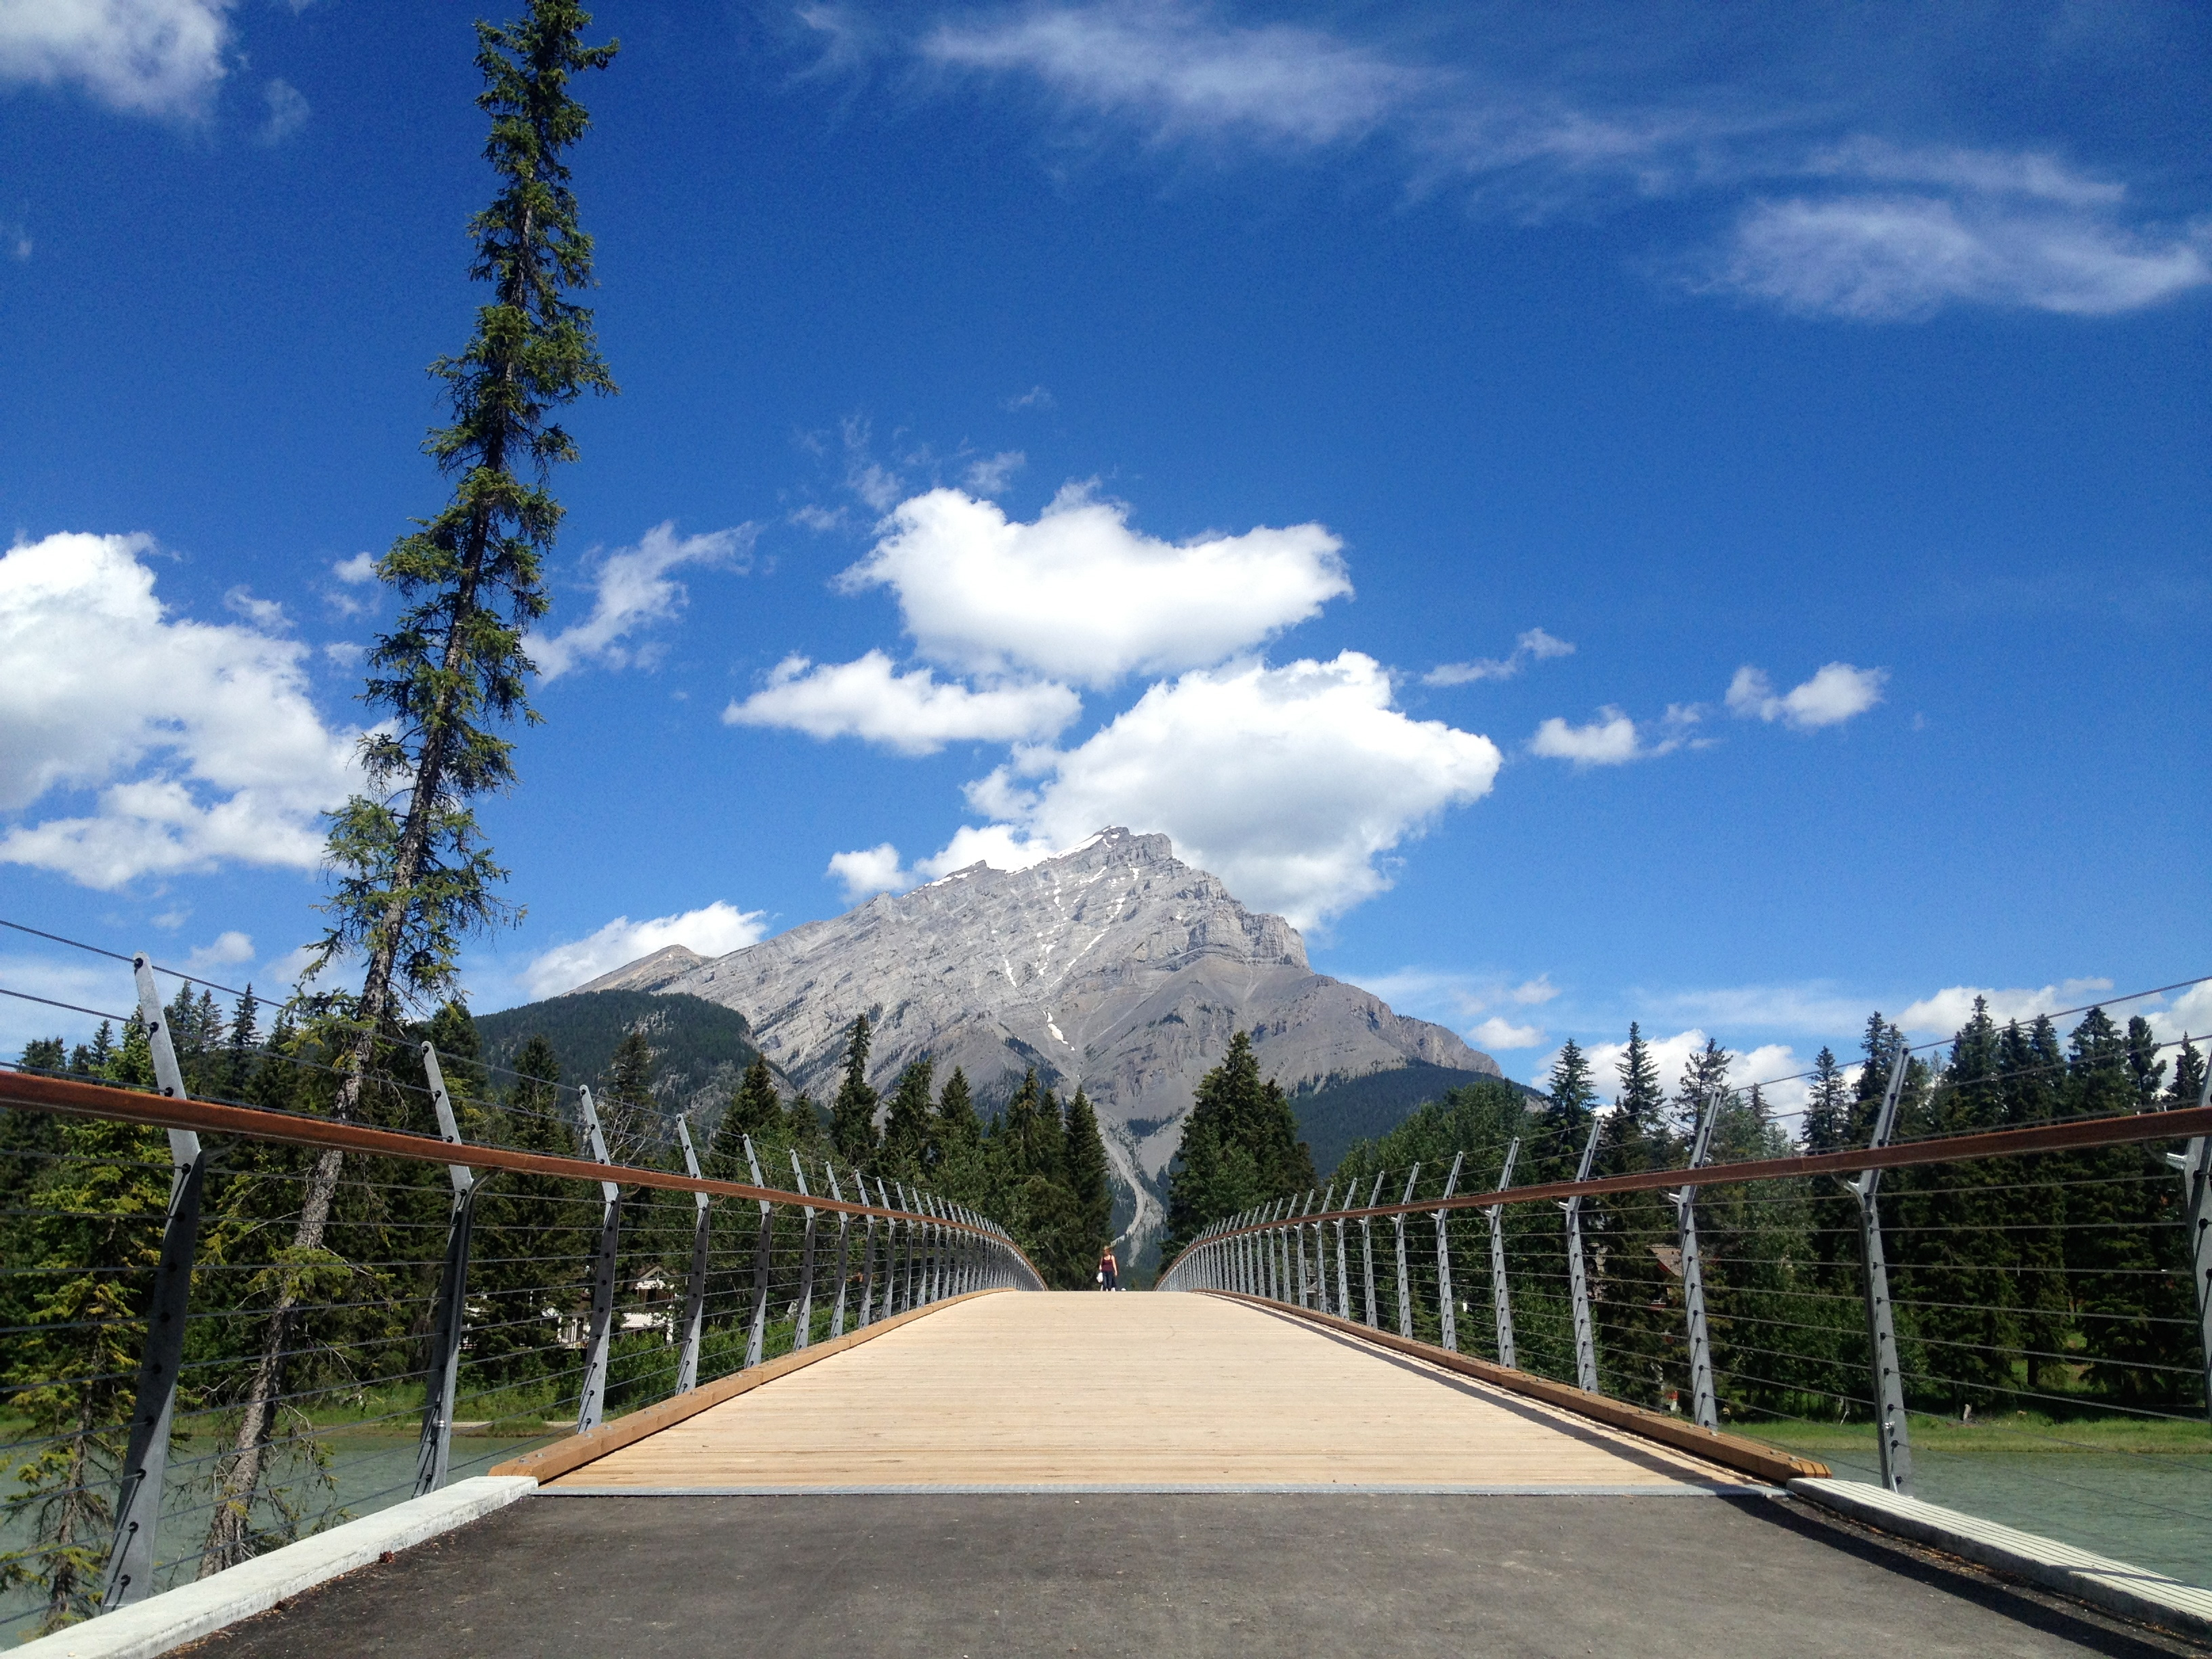 Road Trippin': Banff like you've never seen it before.